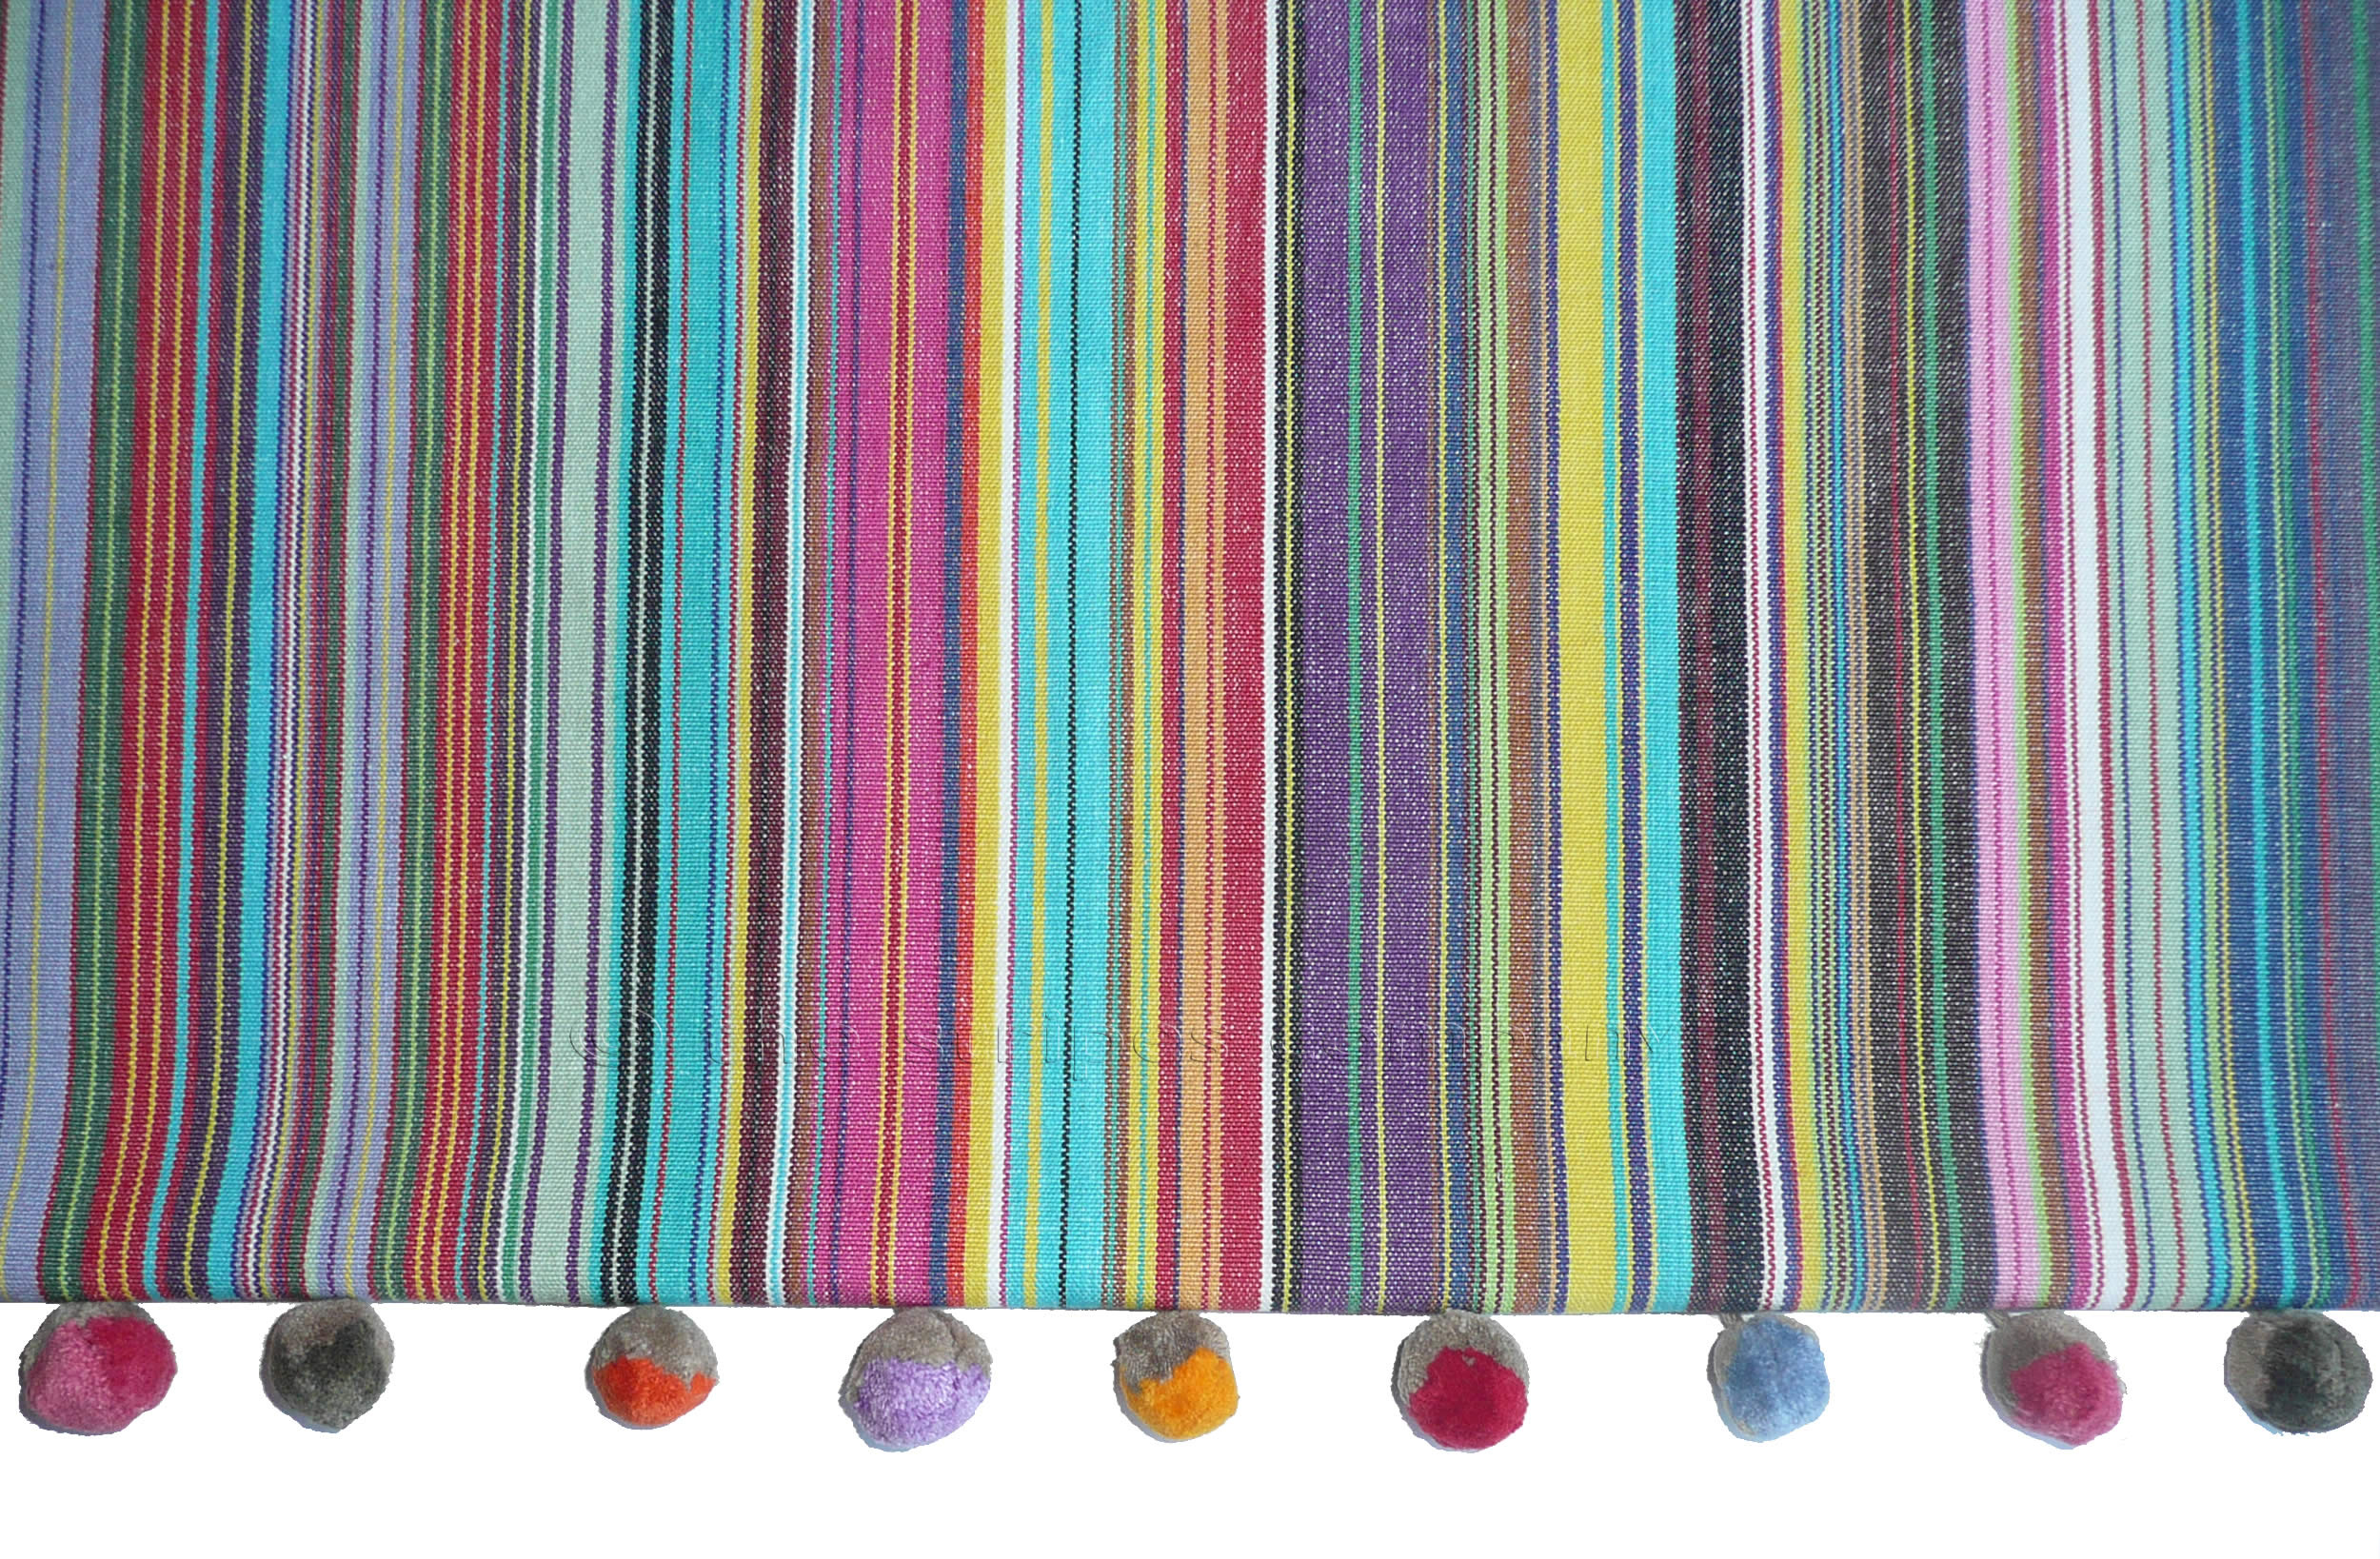 886de037ac0 Mahjong Interior Striped Fabric 150cm. Mahjong Rainbow Striped Fabric